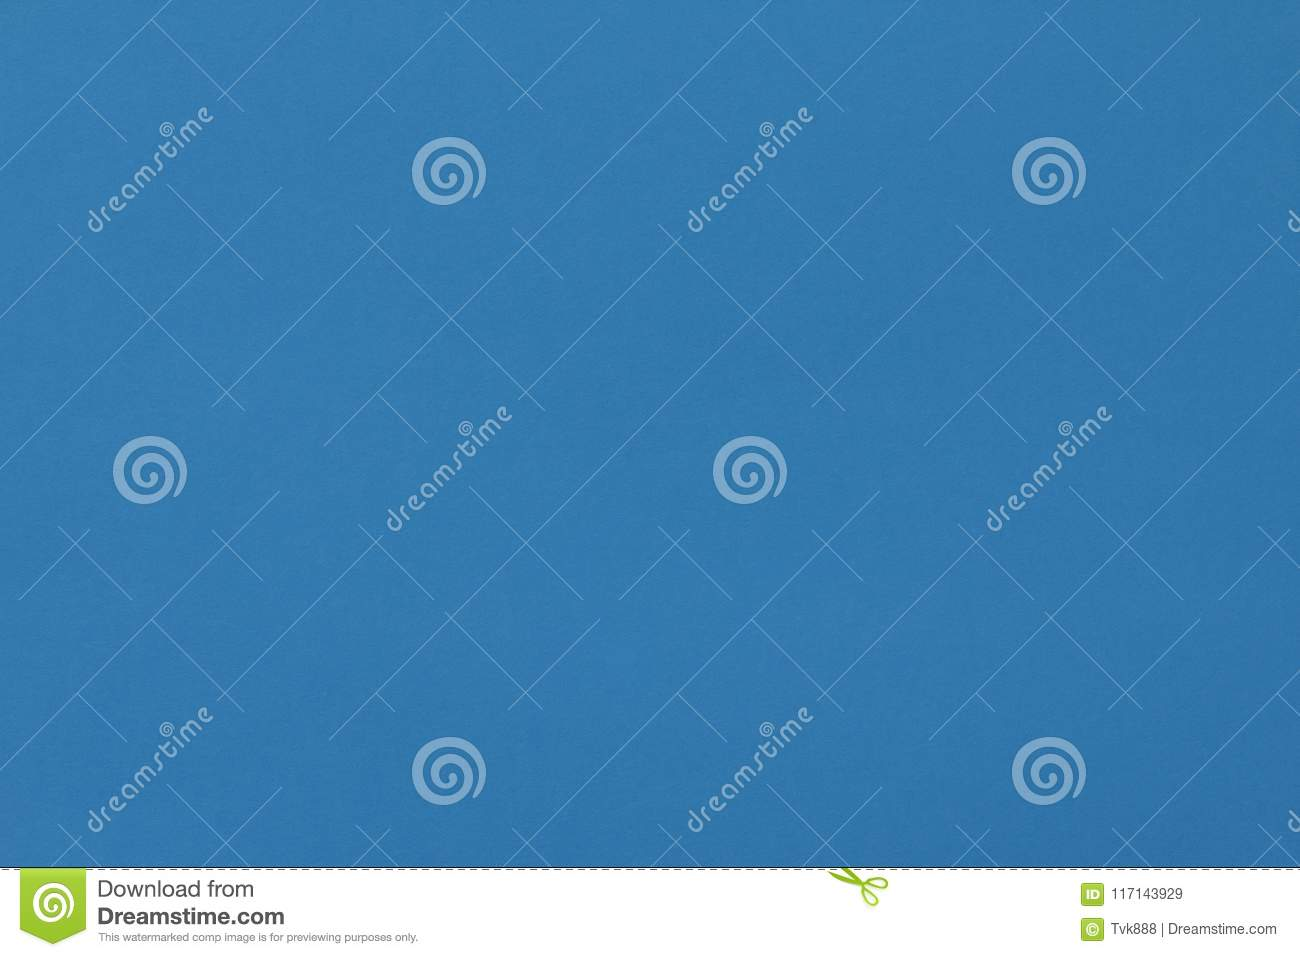 Blue paper background. Trend. Abstraction. Template.